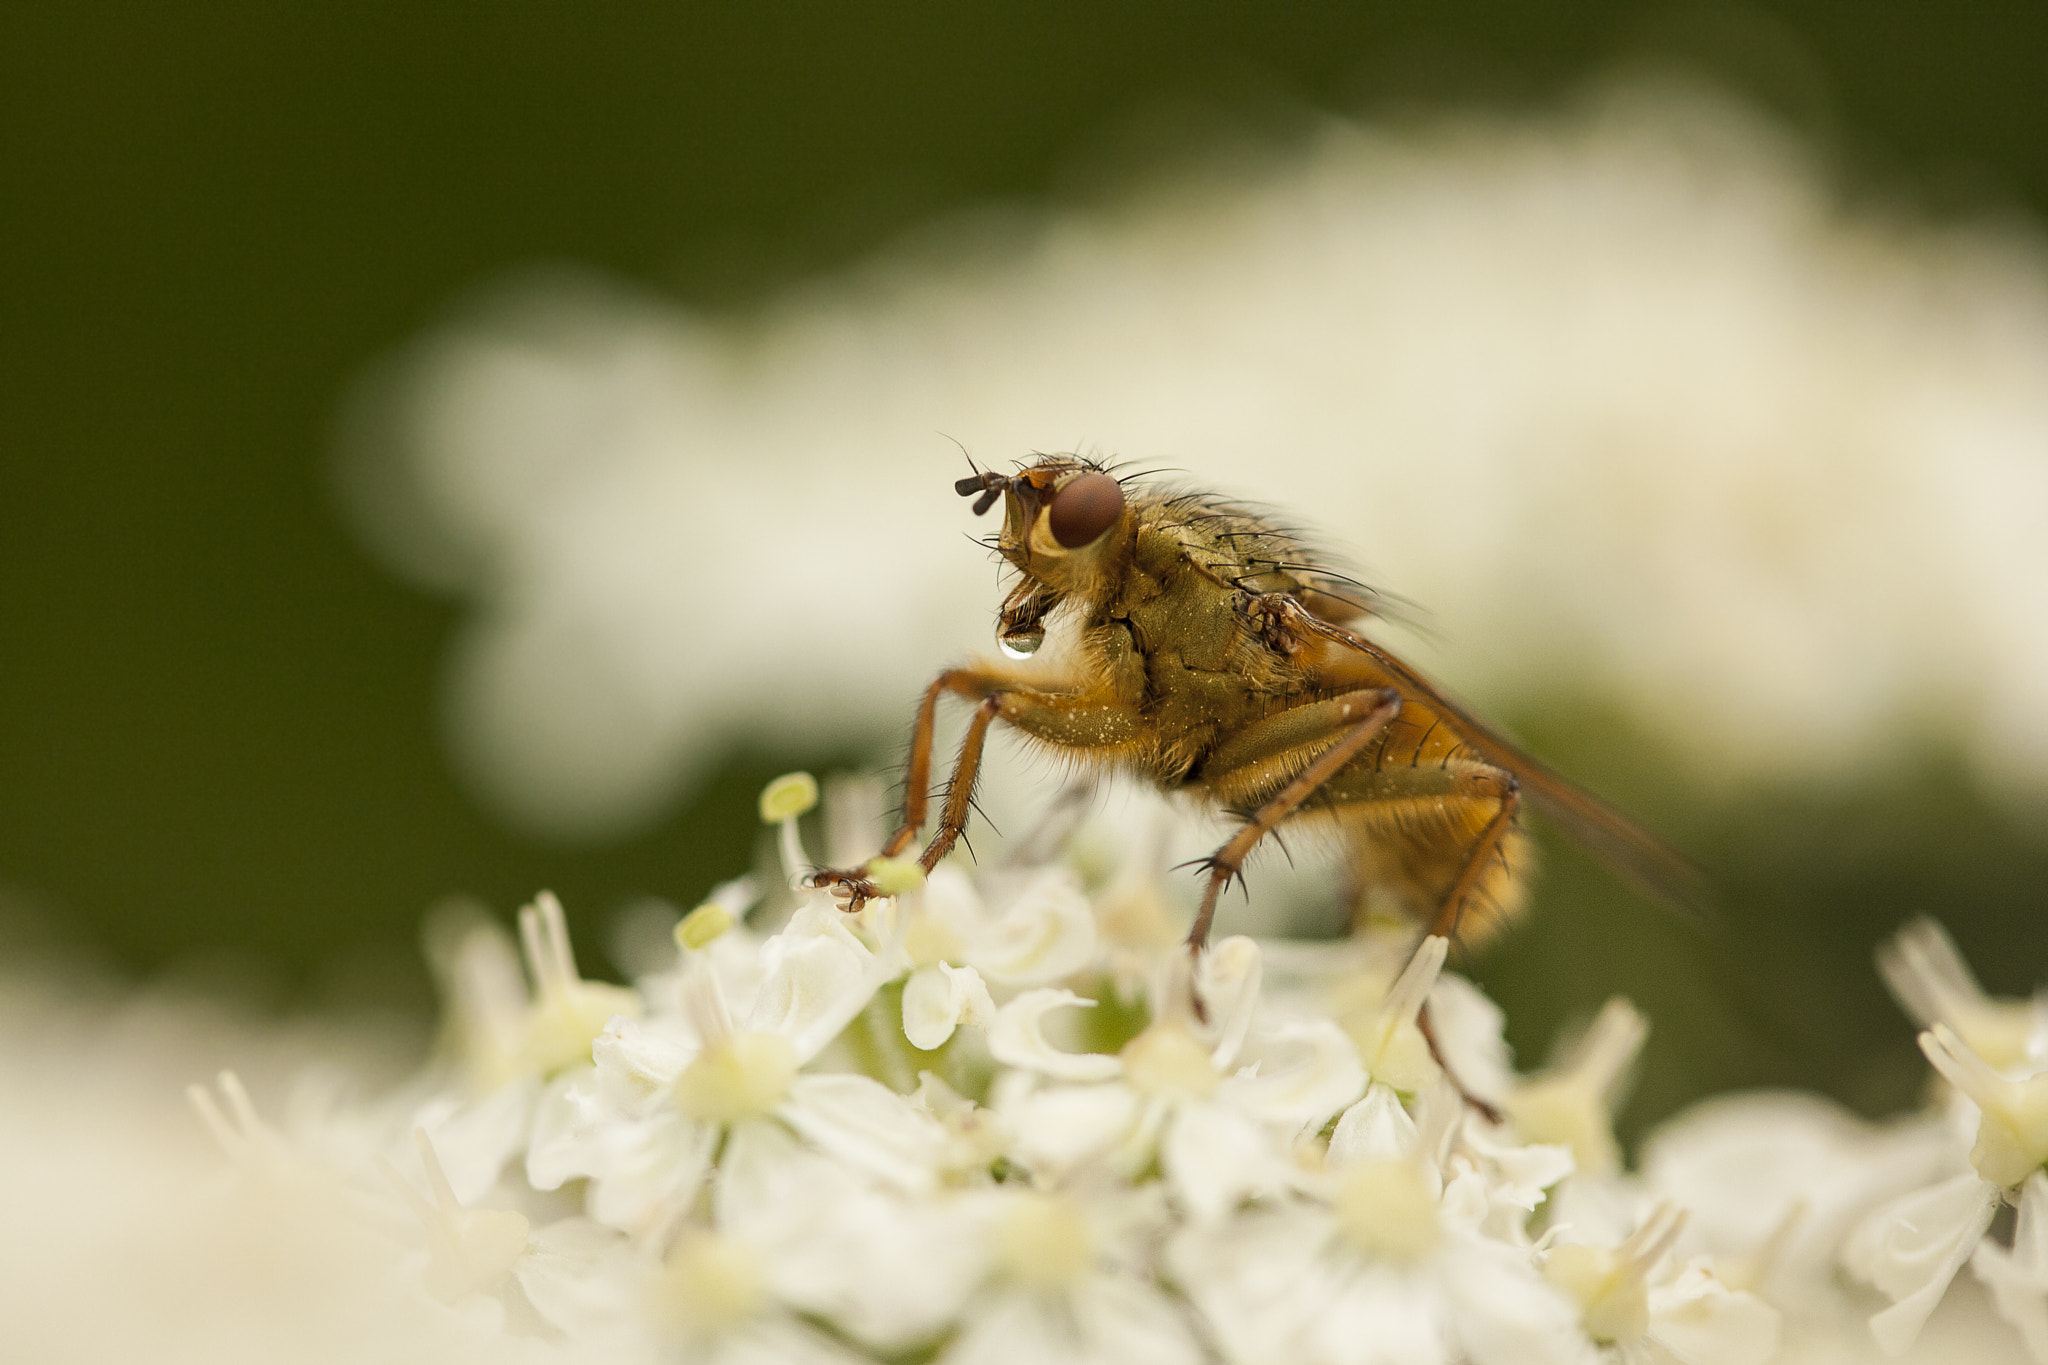 Photograph Scathophaga stercoraria - The Dung fly by Molly Michelin on 500px